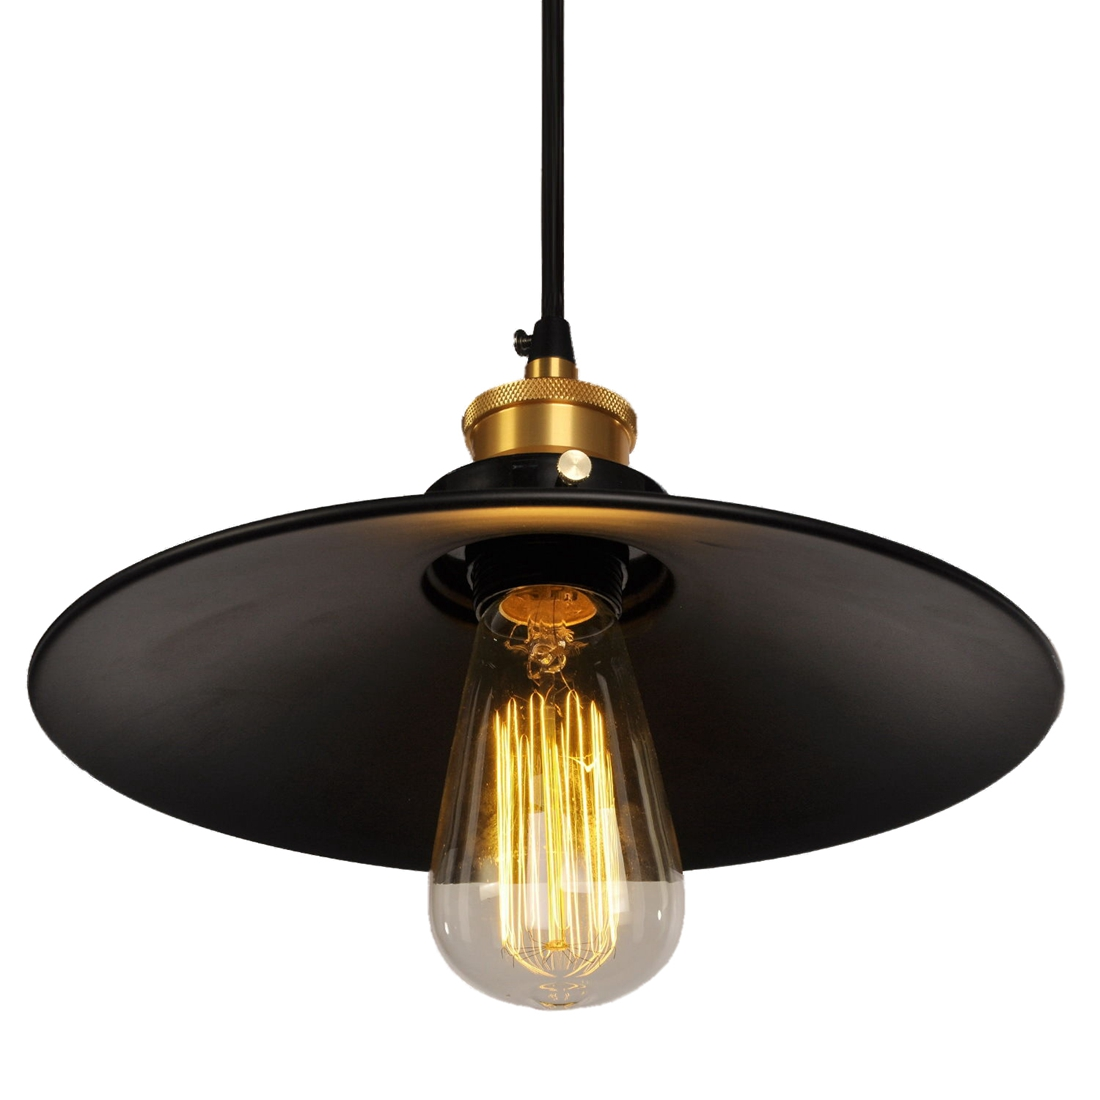 Aliexpress E27 60w Black Shade Garage Metal Light Vintage Retro Lamp Pendant Lighting For Hallway Dining Room From Reliable